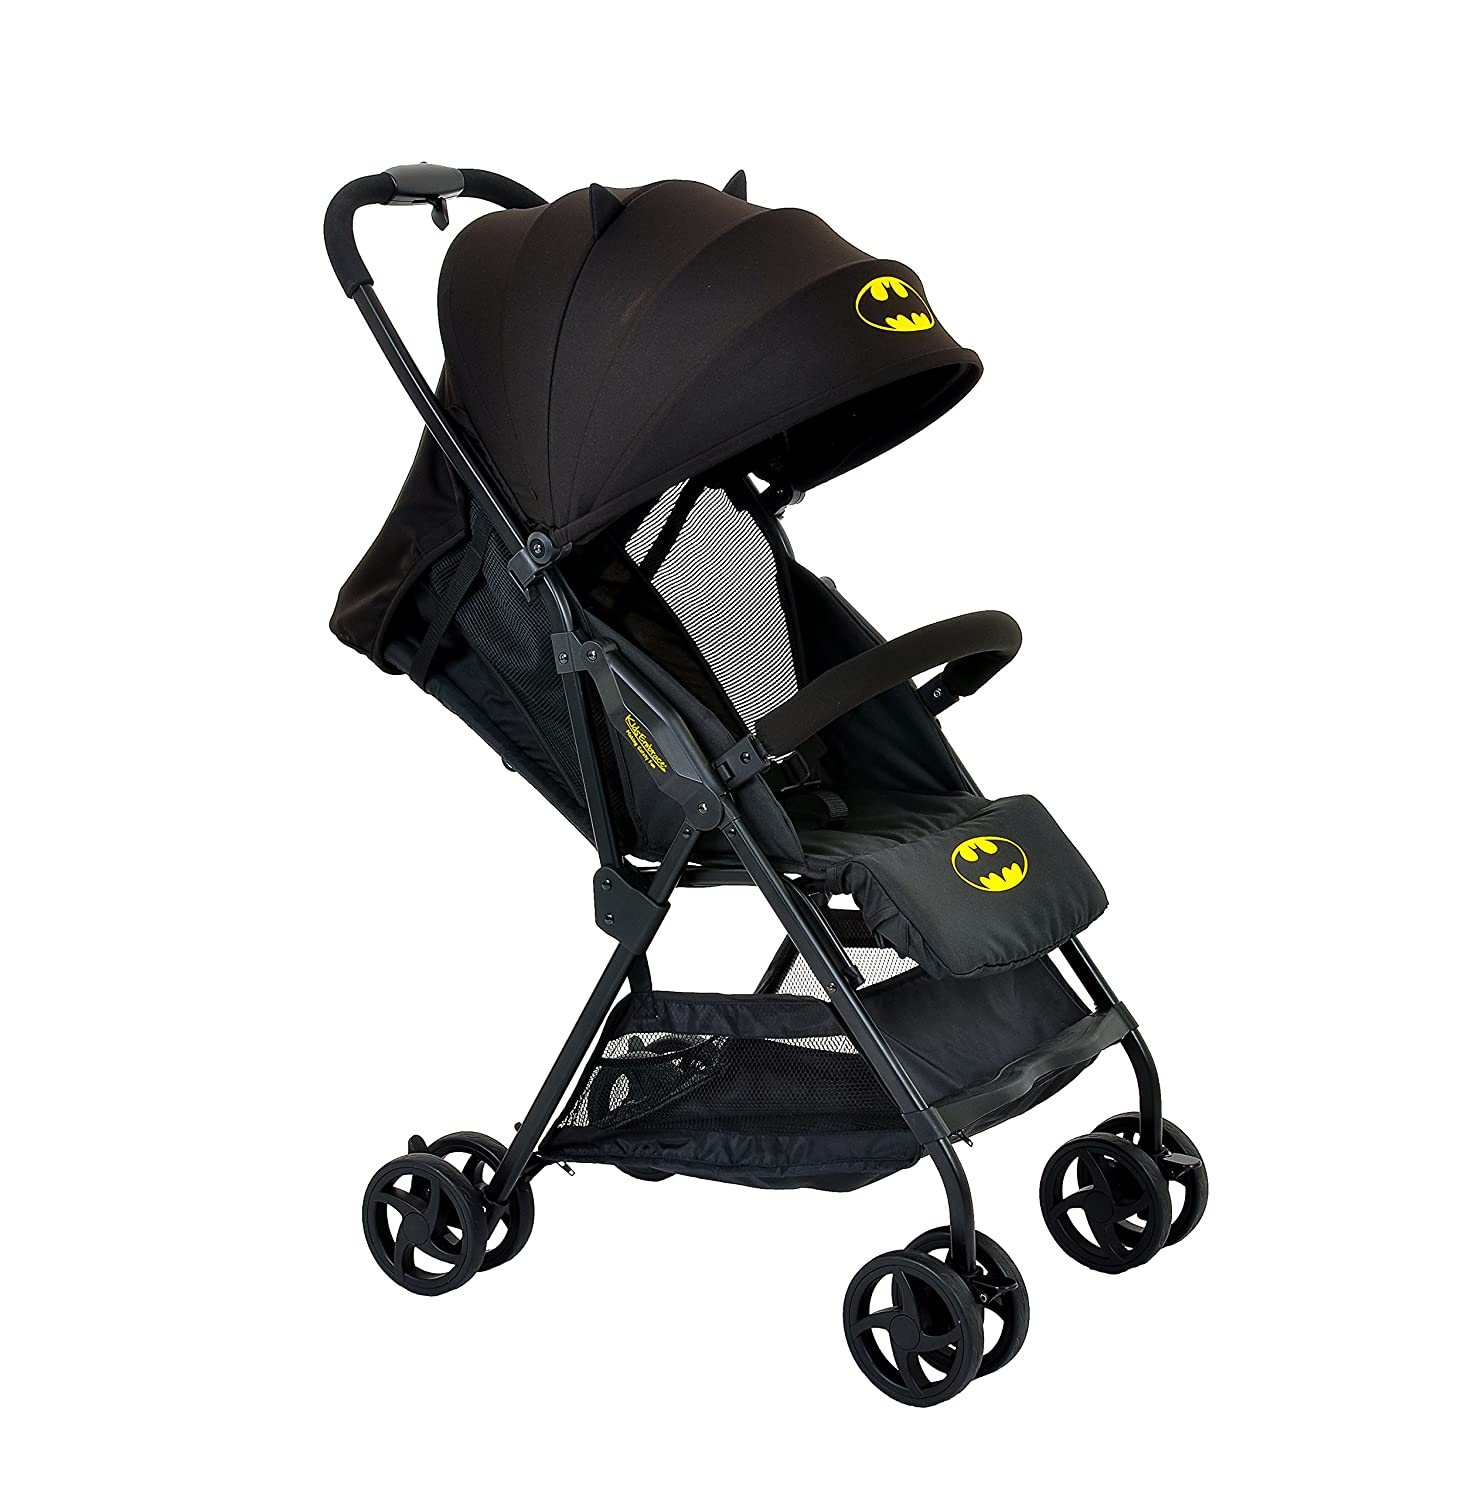 Amazon KidsEmbrace DC ics Batman Lightweight pact Stroller Black Canopy Baby